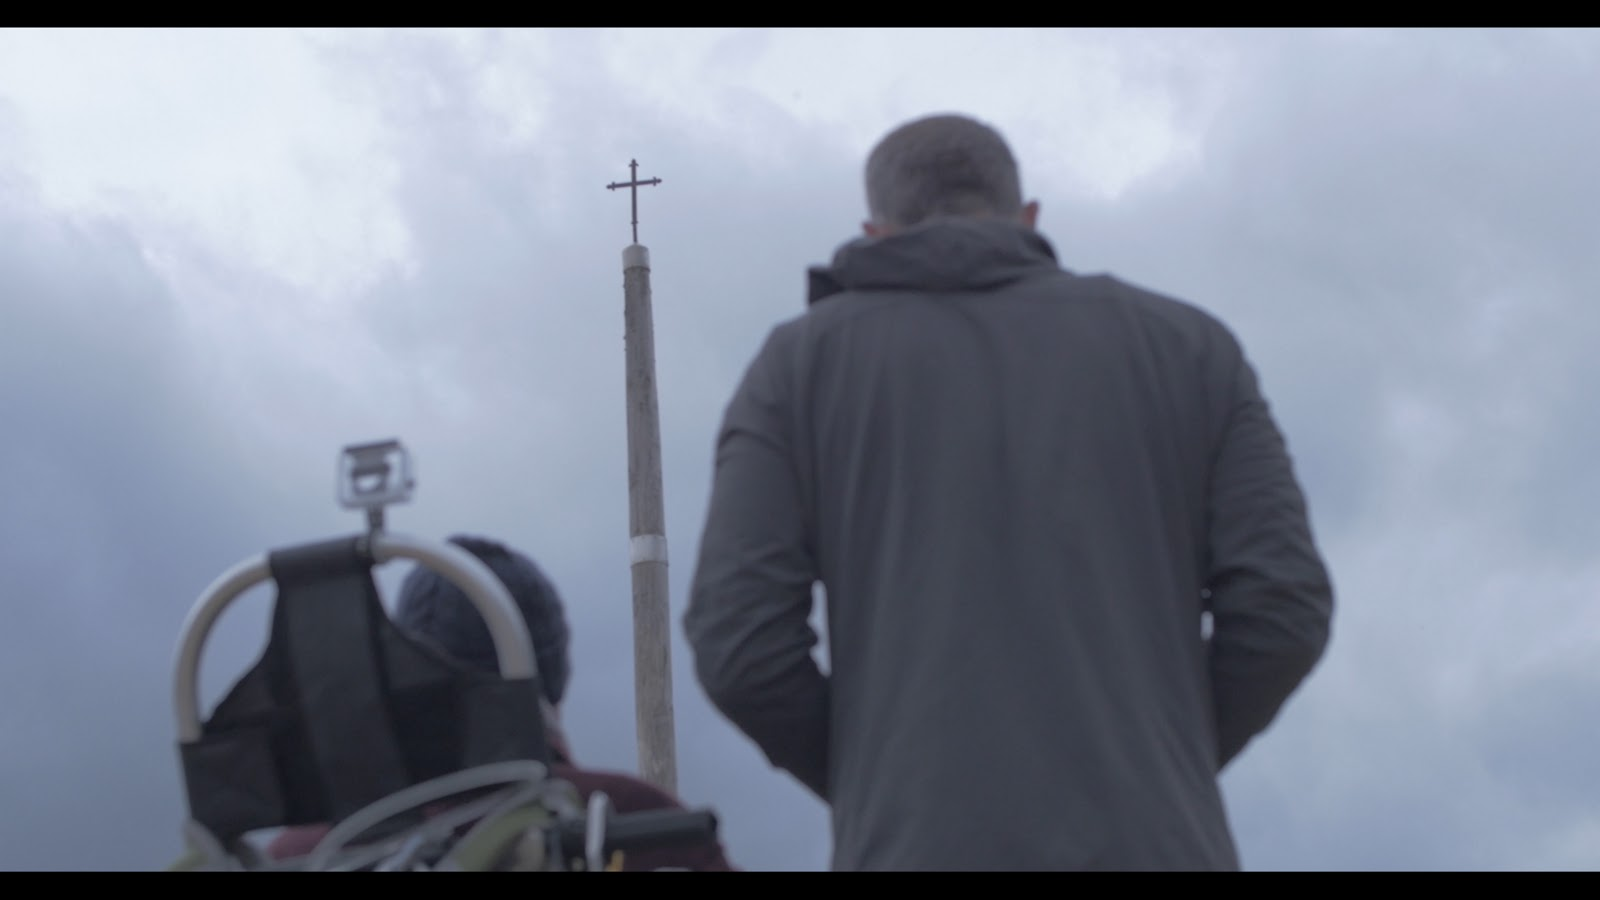 Not only did the Camino present its outward struggles, the guys looked inward as well. This scene shows Patrick and Justin standing before the Cruz de Ferro (Iron Cross) and was one of the most poignant and profound moments in the book. Photo: © IllPushYou.com. Unauthorized use is prohibited.